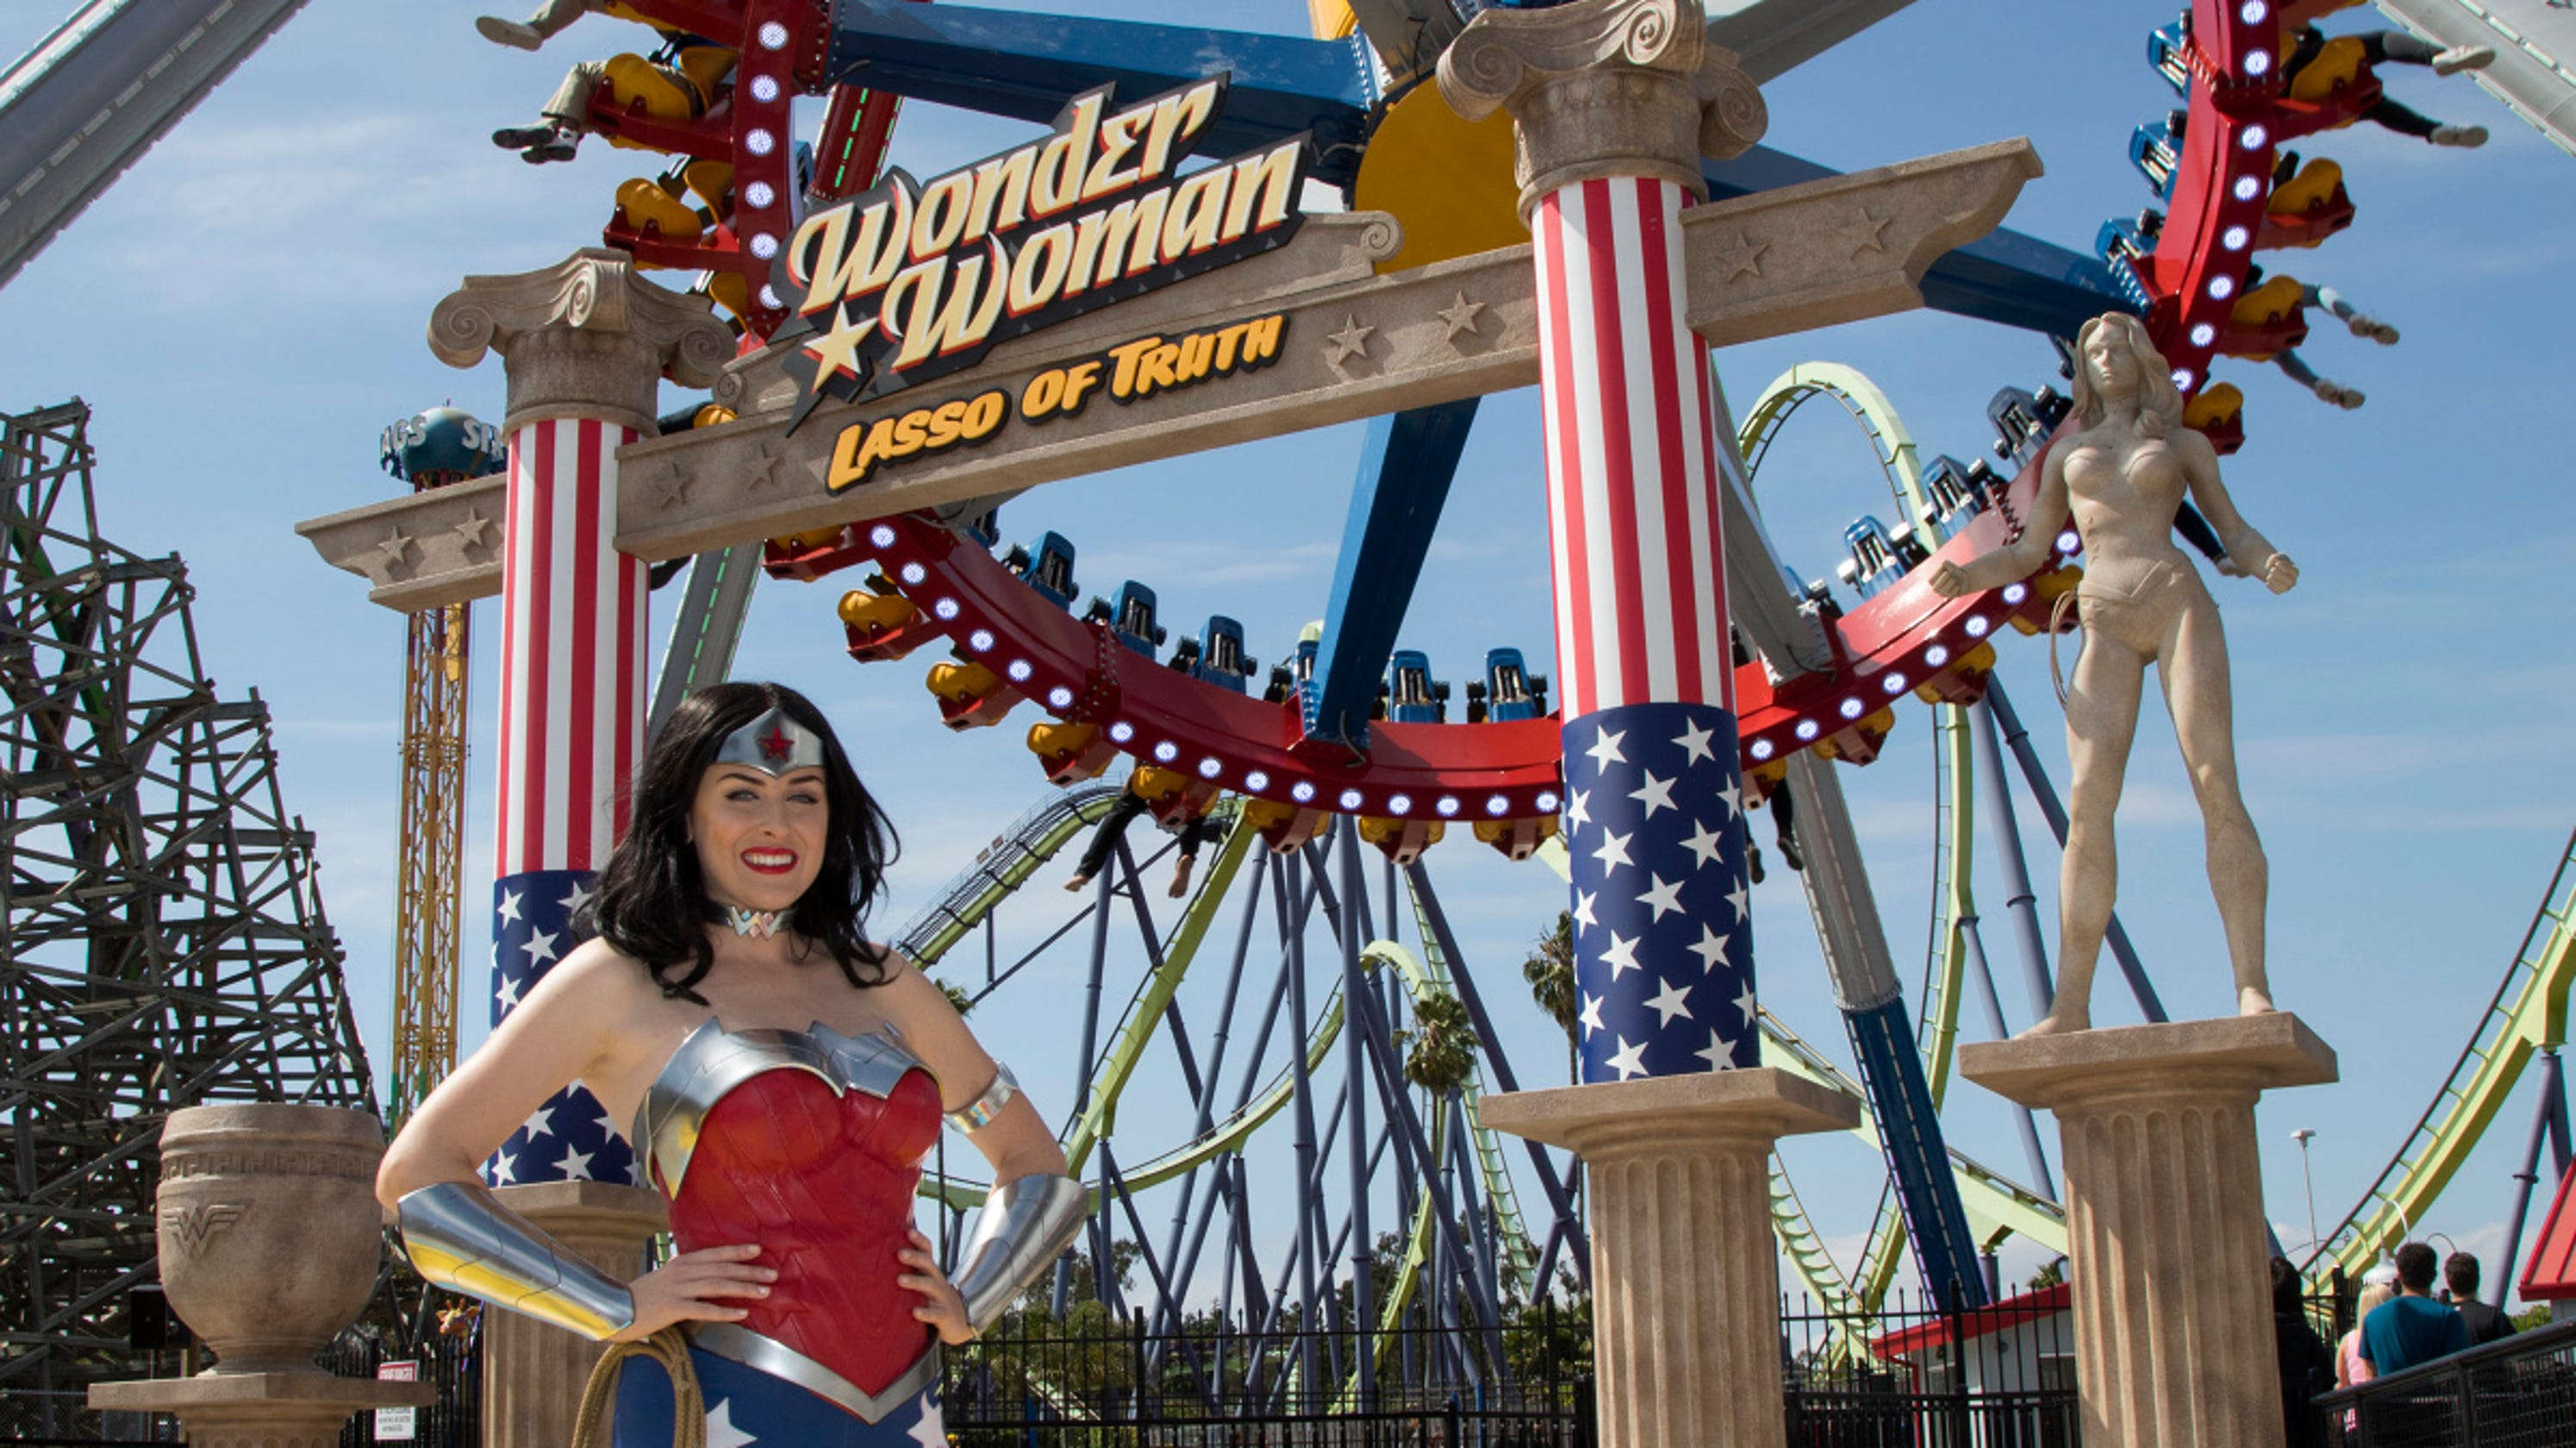 Wonder Woman ride takes flight at Six Flags Great Adventure